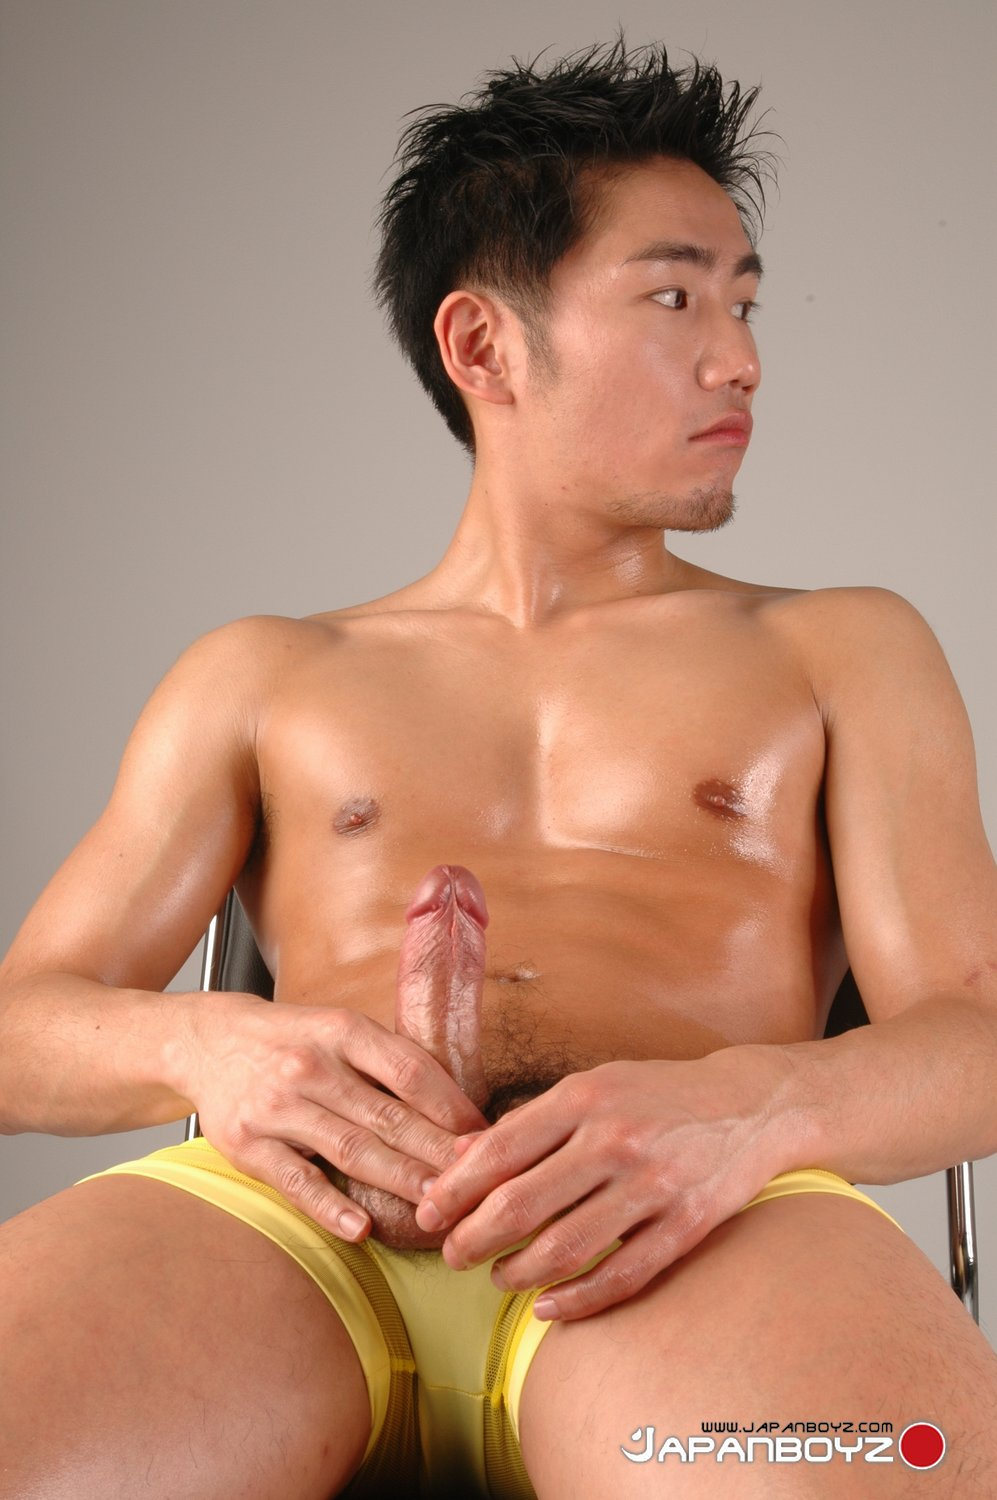 JapanBoyz Erotic Ninja 1 The Hitman 3 torrent asian 03 Asian Twink Gets Fucked Bareback with Cum in the Ass